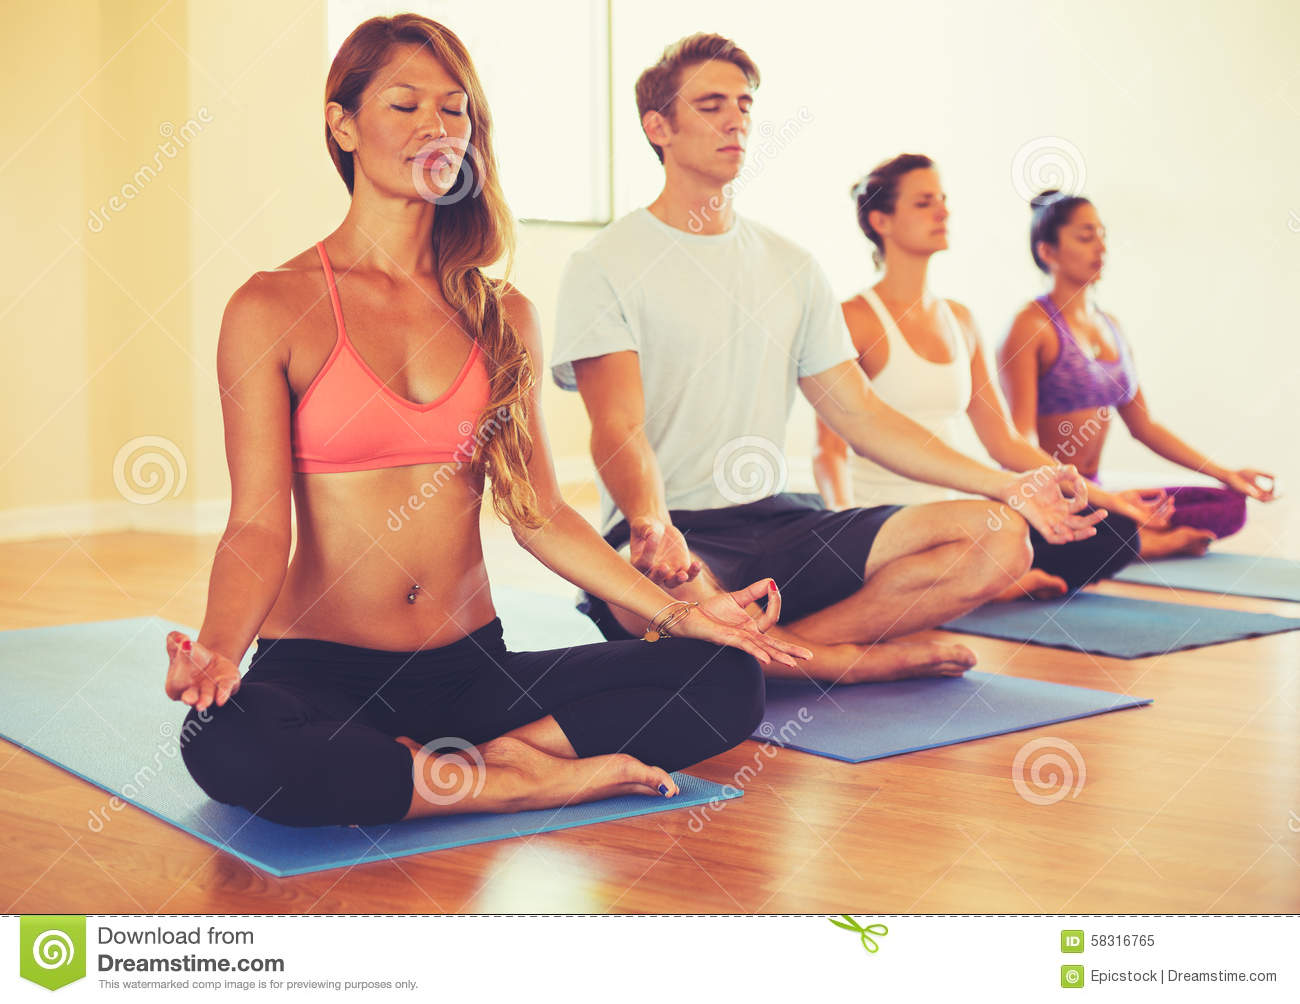 People Relaxing And Meditating In Yoga Class Stock Photo